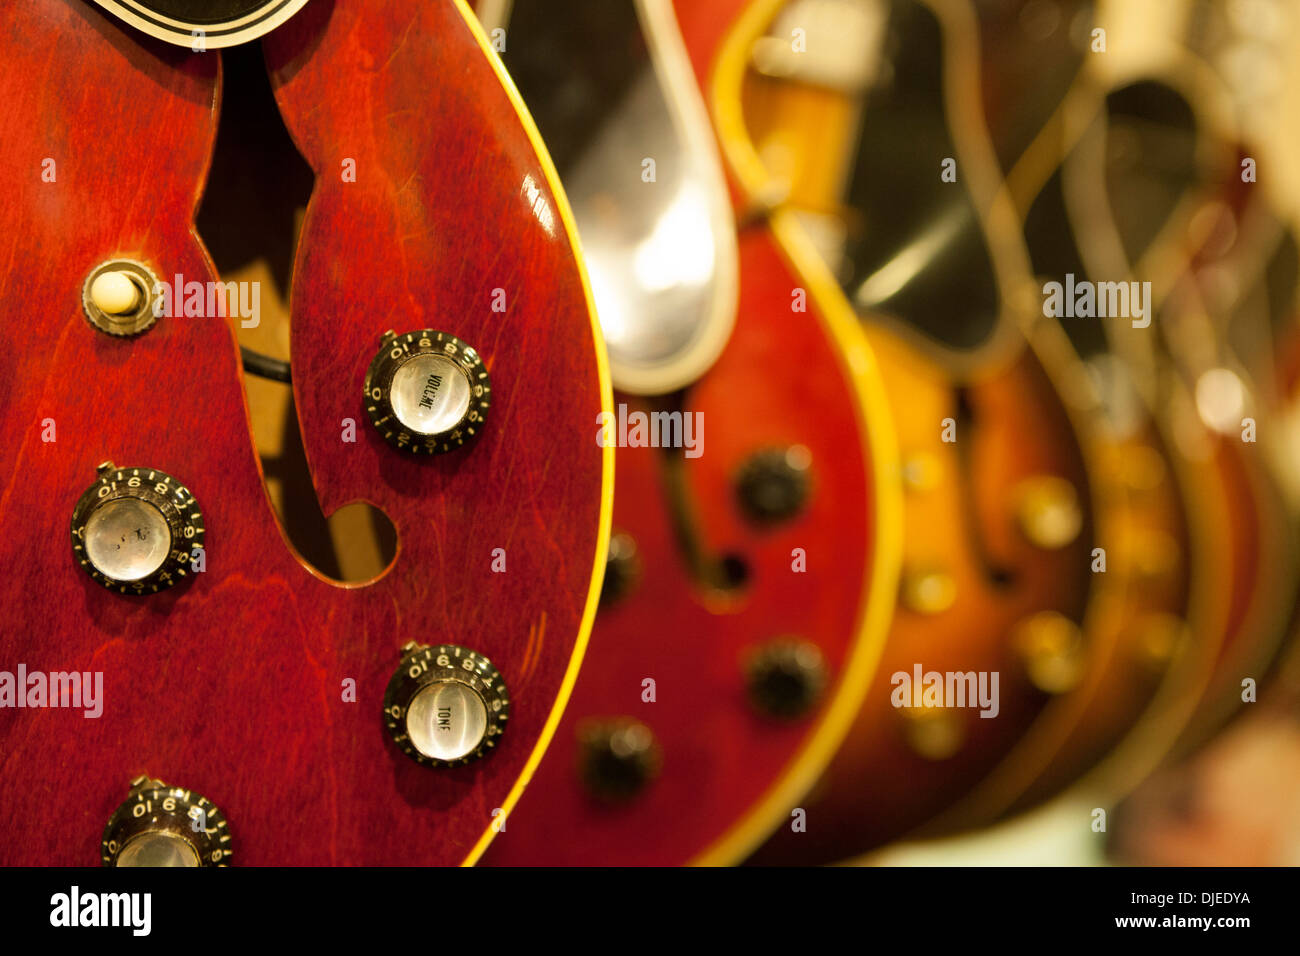 A close up of a red electric guitar and its various sound controls such as volume. It appears to be used and for sale in a store - Stock Image